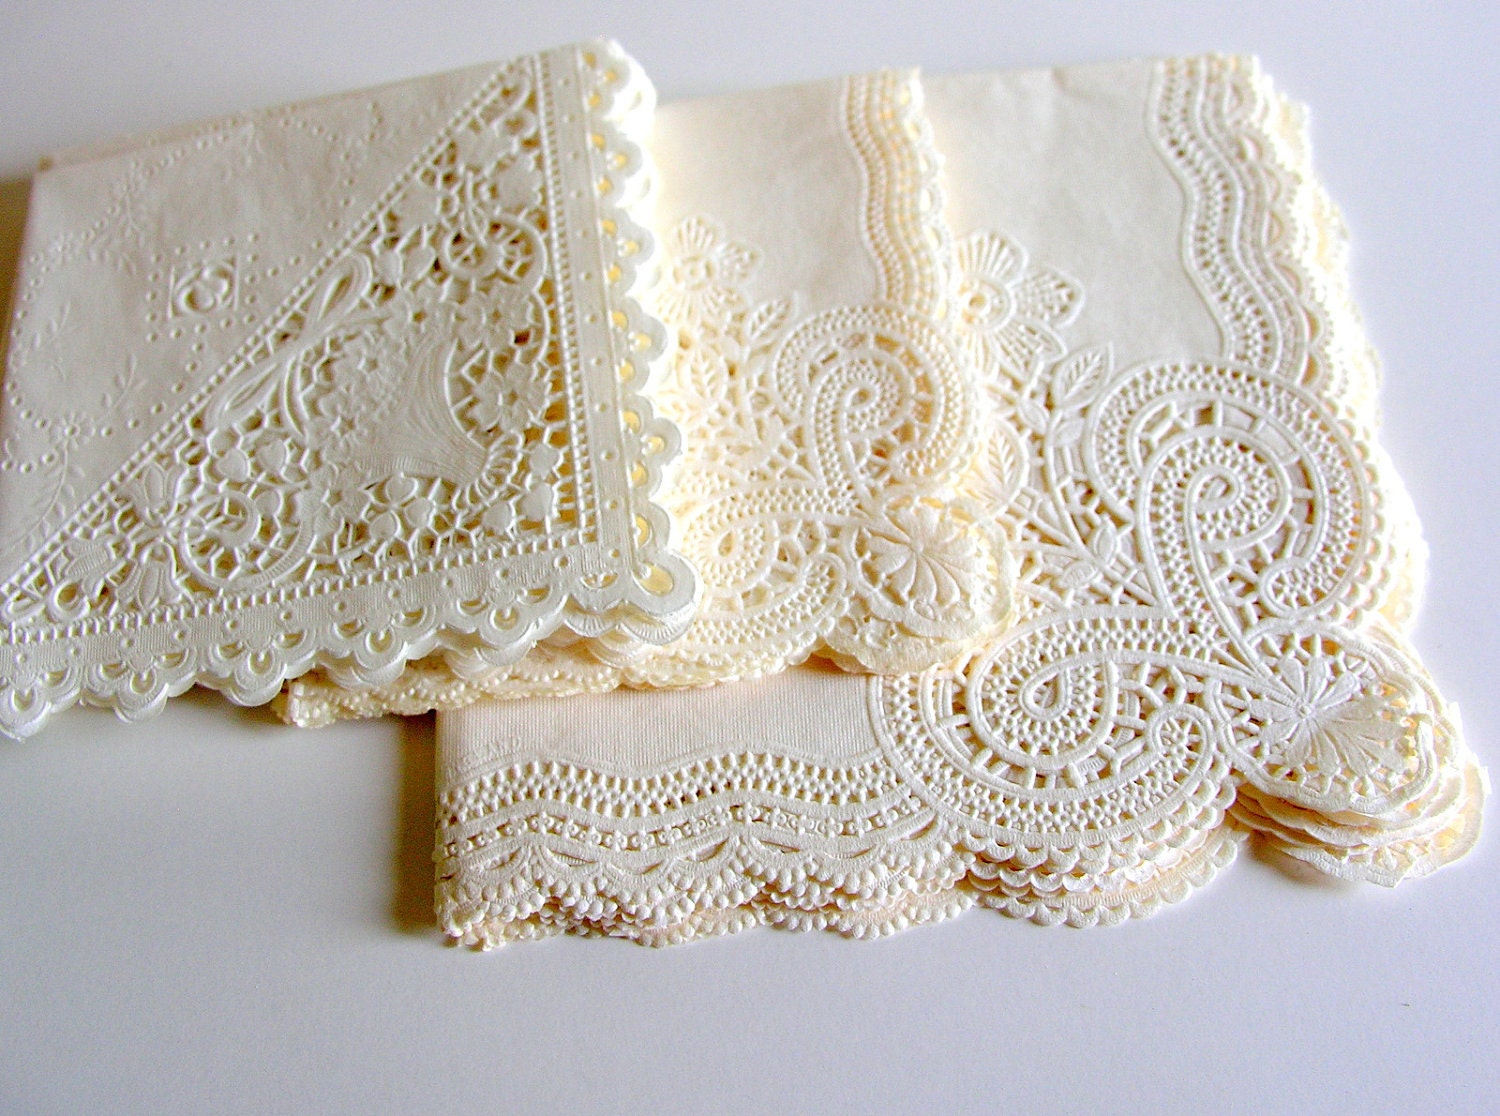 Vintage paper lace napkins large lot of 20 by veraviola on etsy